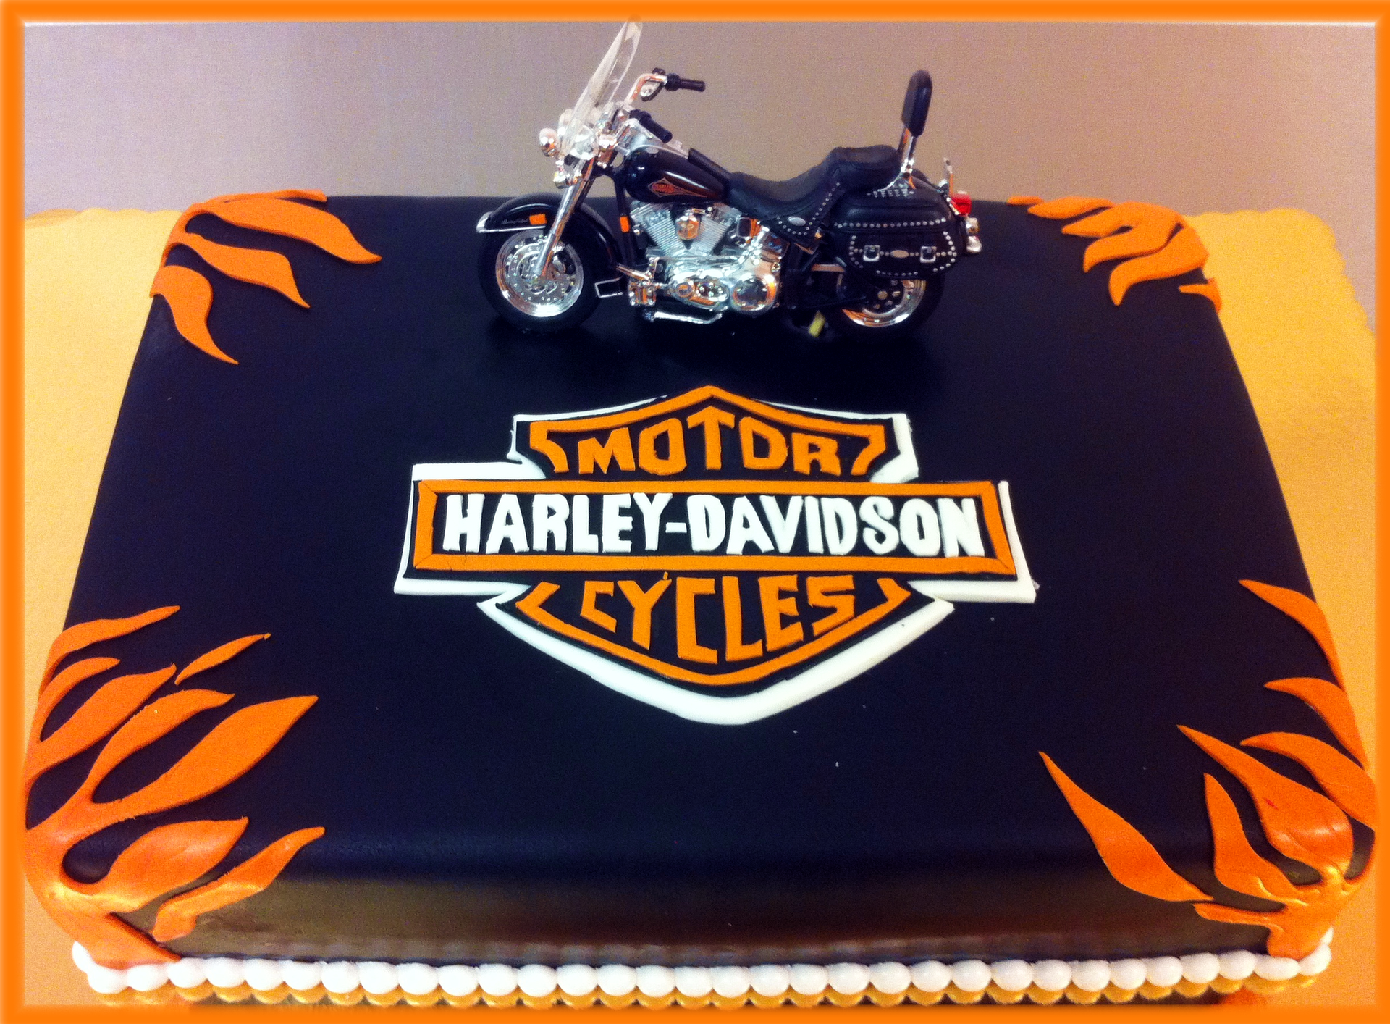 Harley davidson motorcycle cake google search miss for Motorbike template for cake